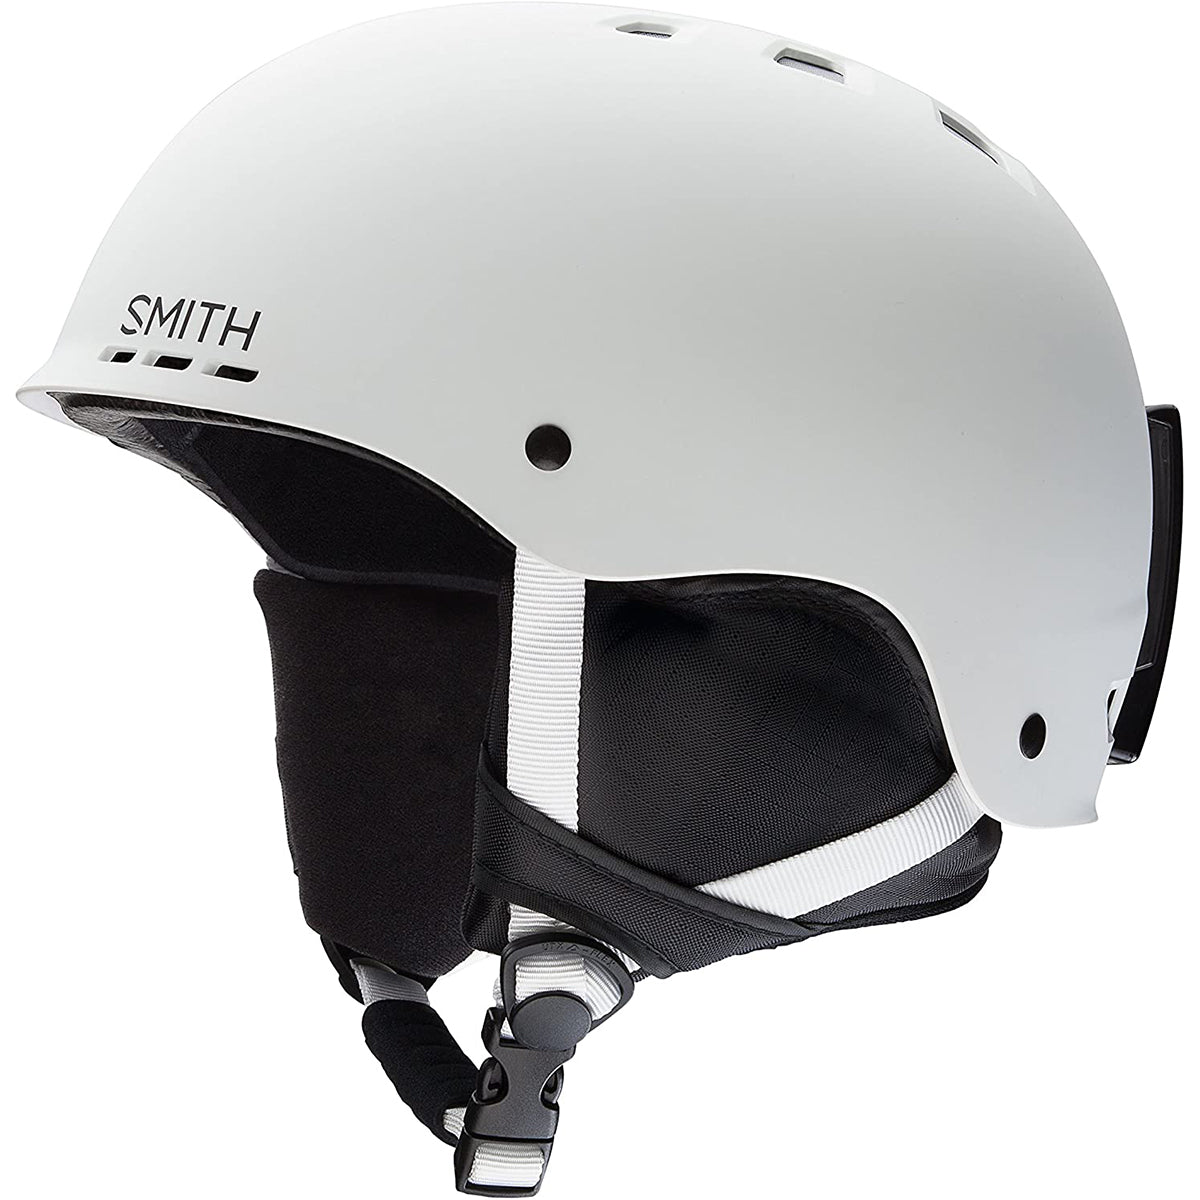 113a935c934a1 Smith Optics Holt Adult Snow Helmets - Matte White